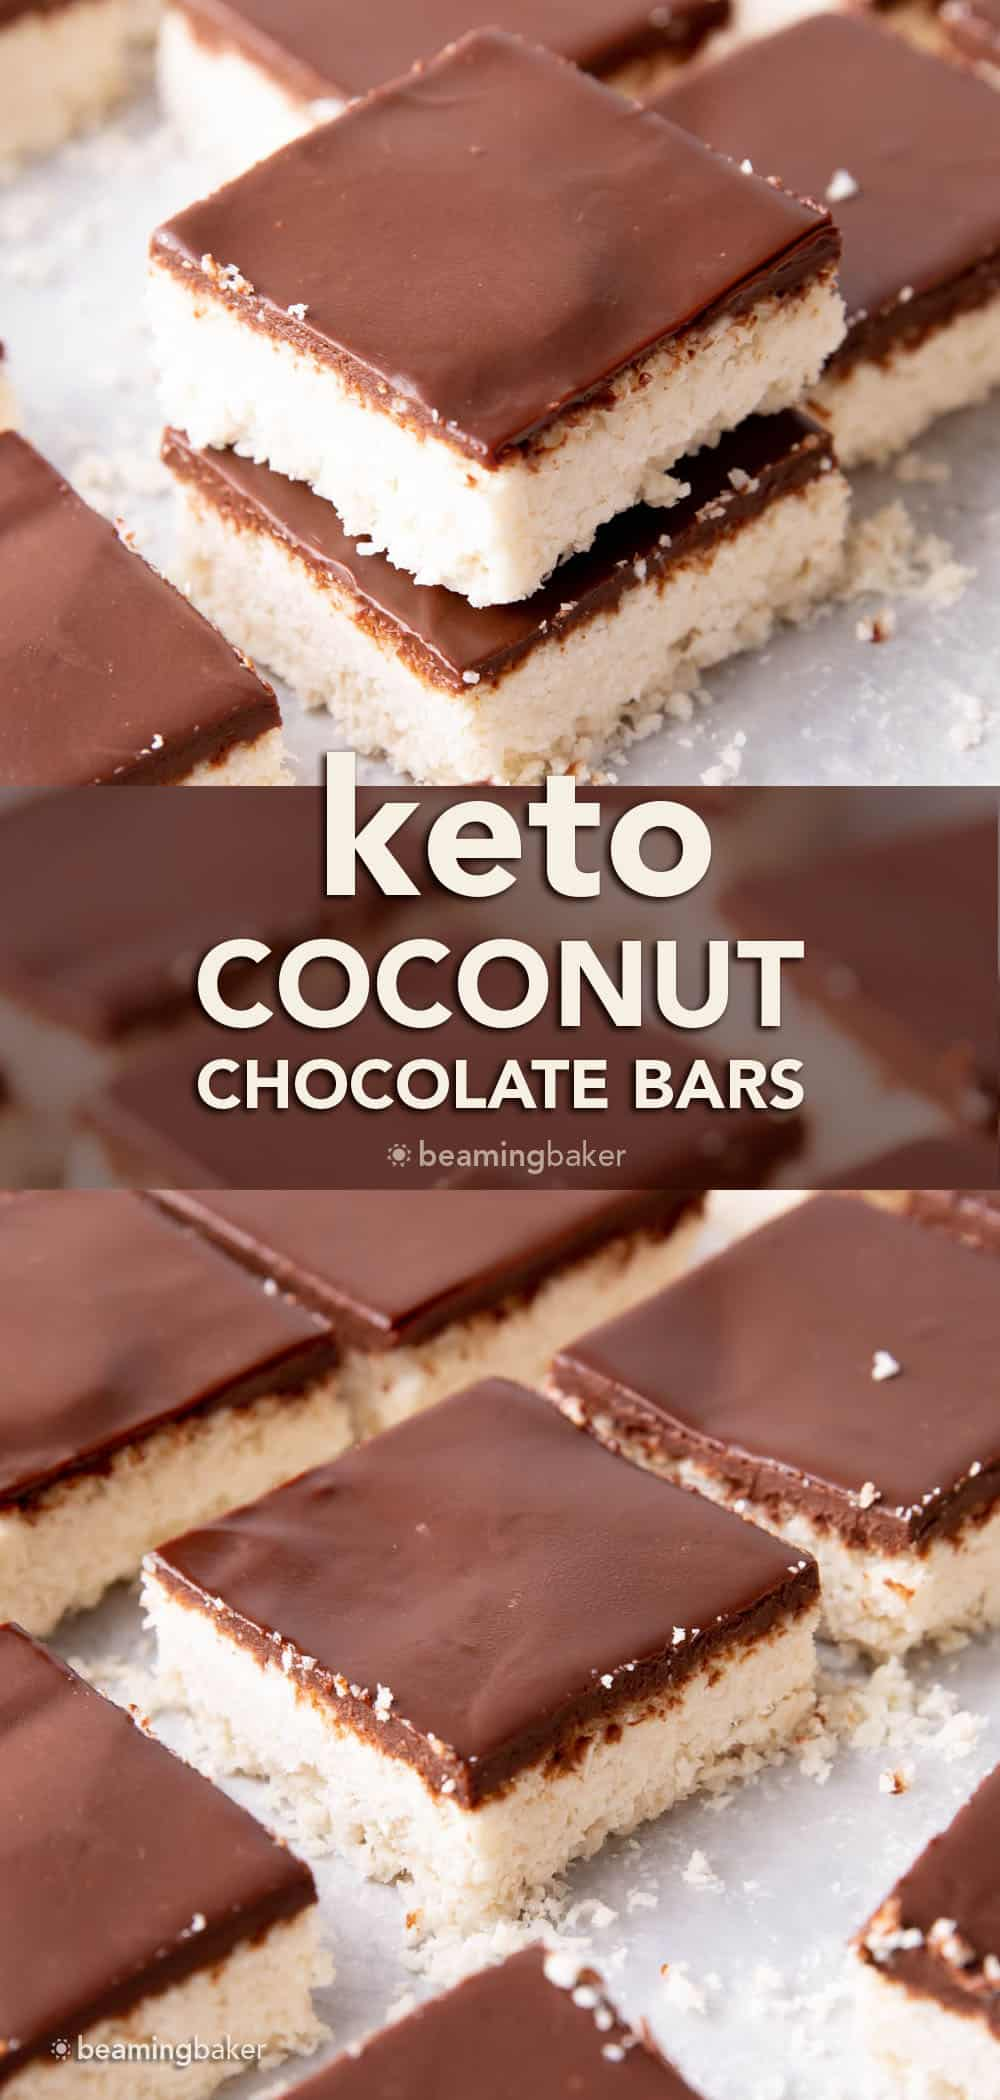 Keto Coconut Chocolate Bars: decadent keto coconut bars topped with a velvety layer of rich dark chocolate. The best keto coconut chocolate bars—Low Carb, super easy to make and mouthwateringly good! #Keto #Coconut #LowCarb #KetoBars | Recipe at BeamingBaker.com